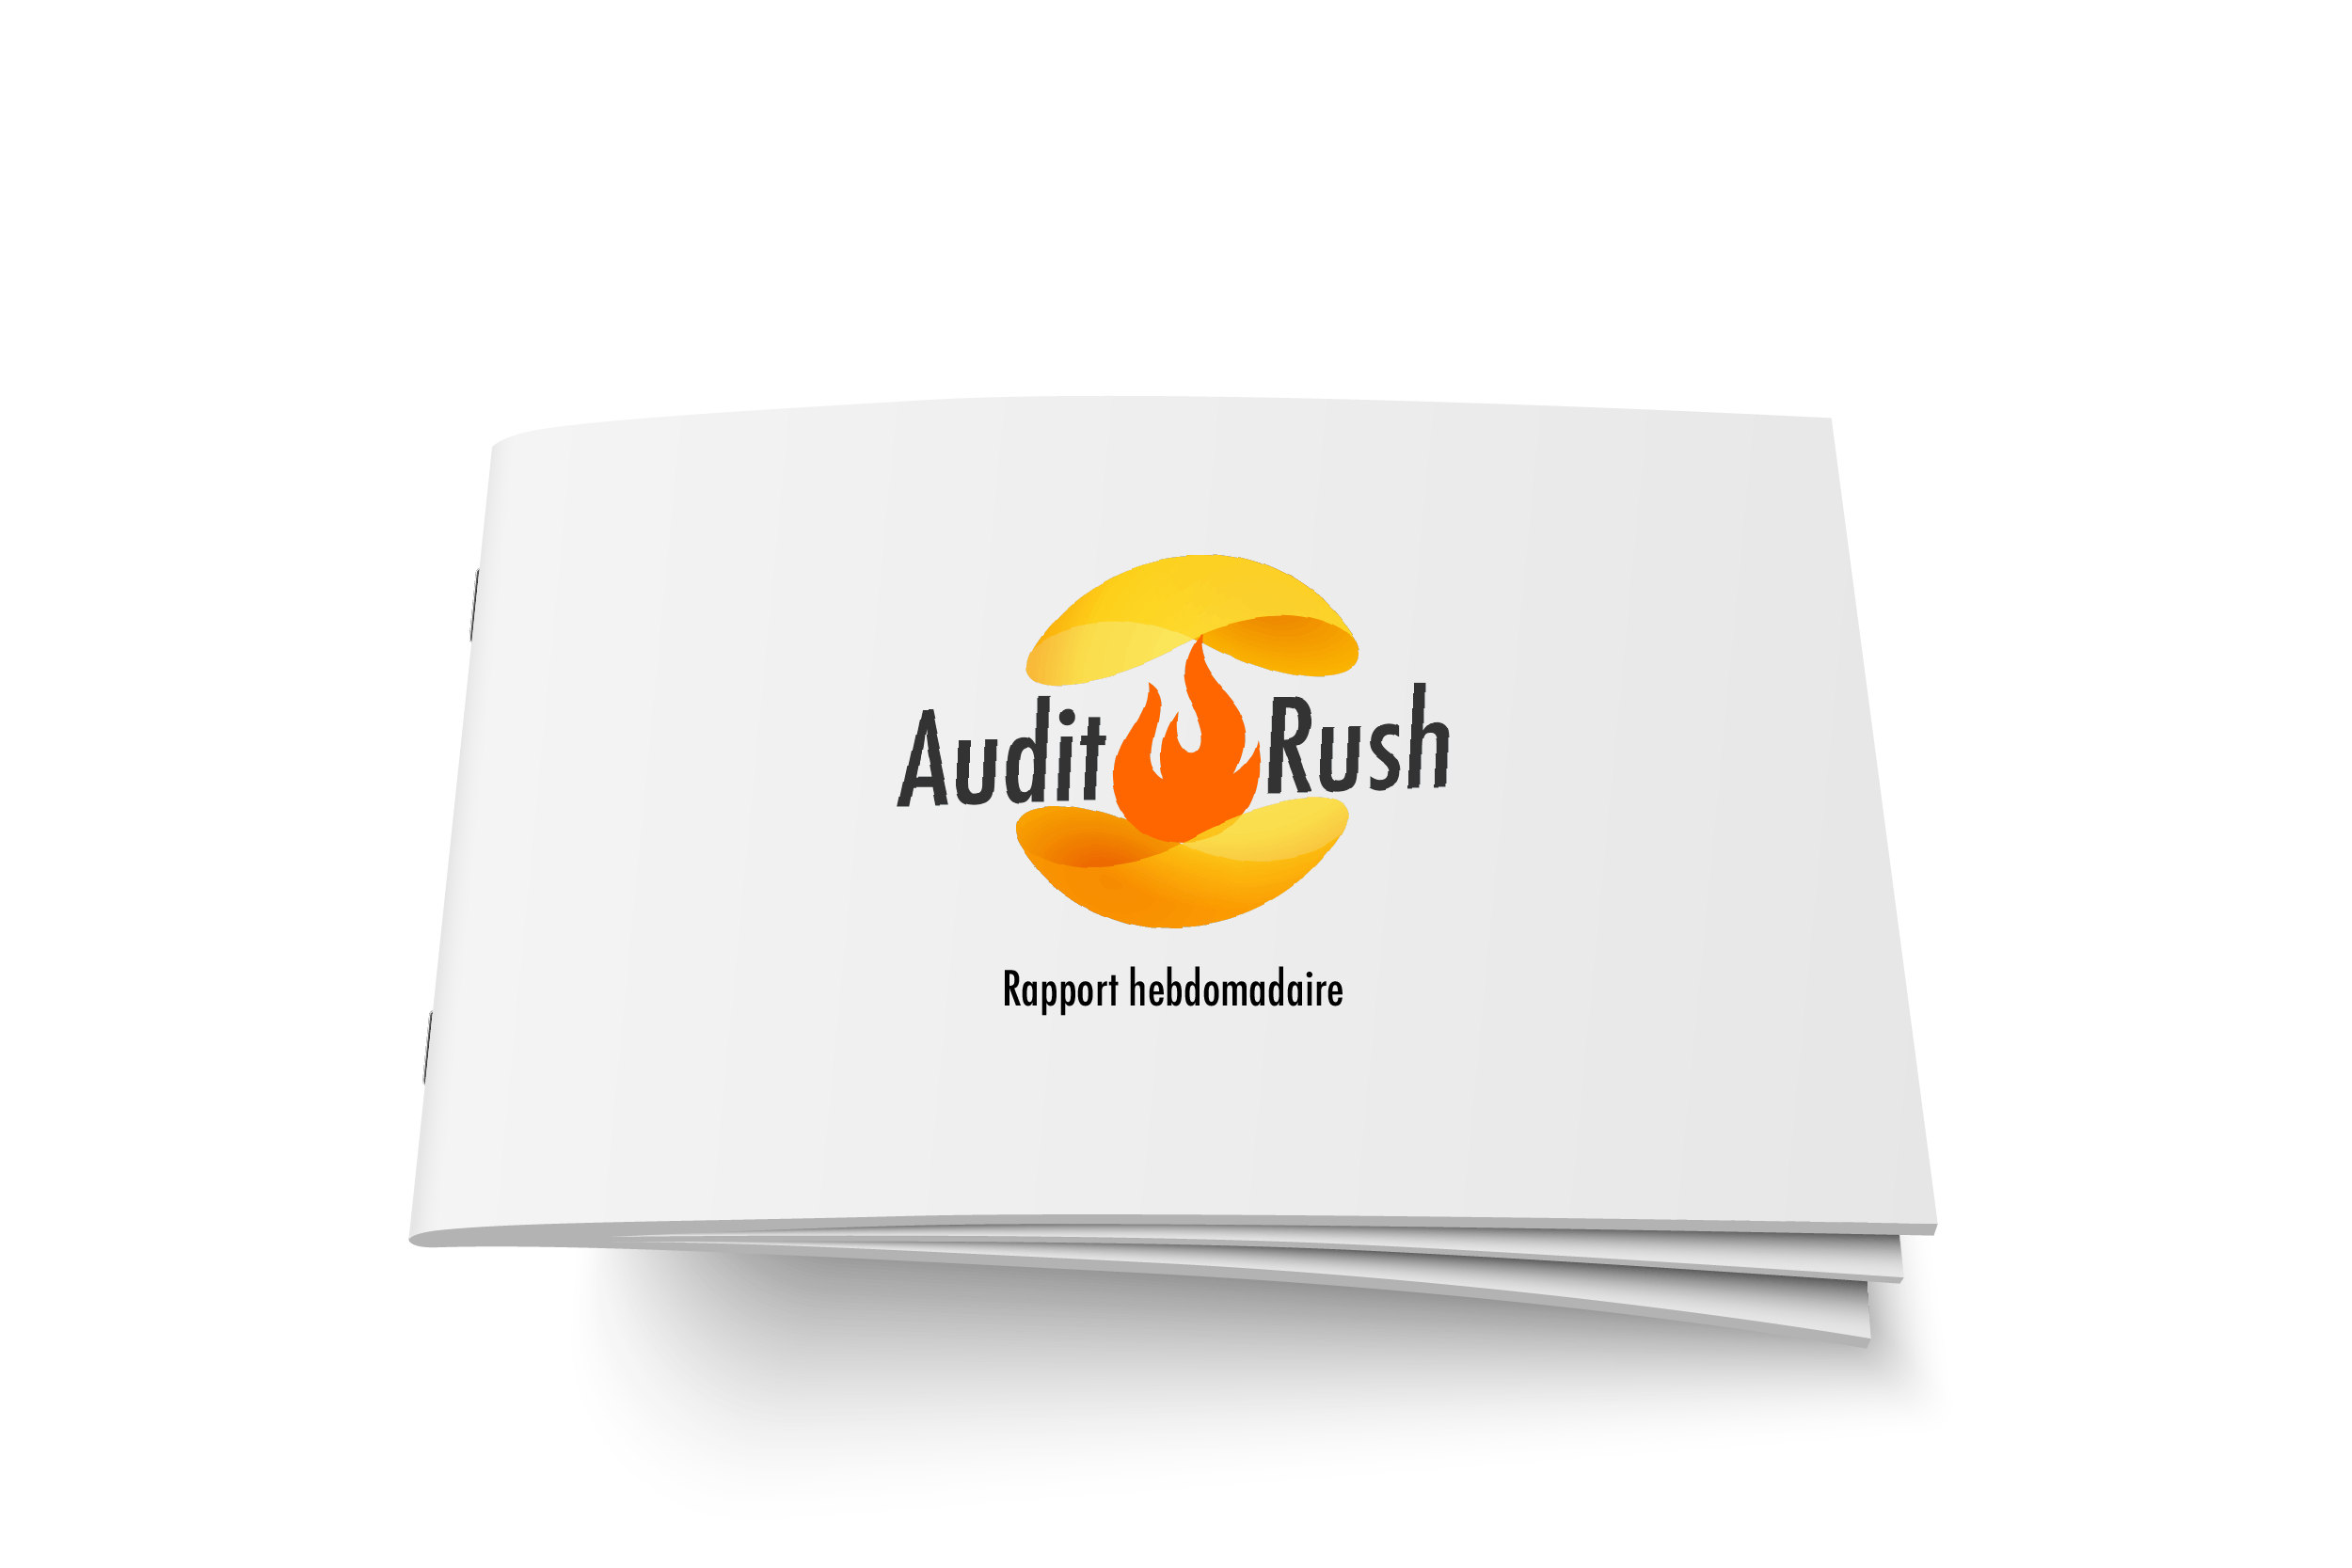 Audit Rush